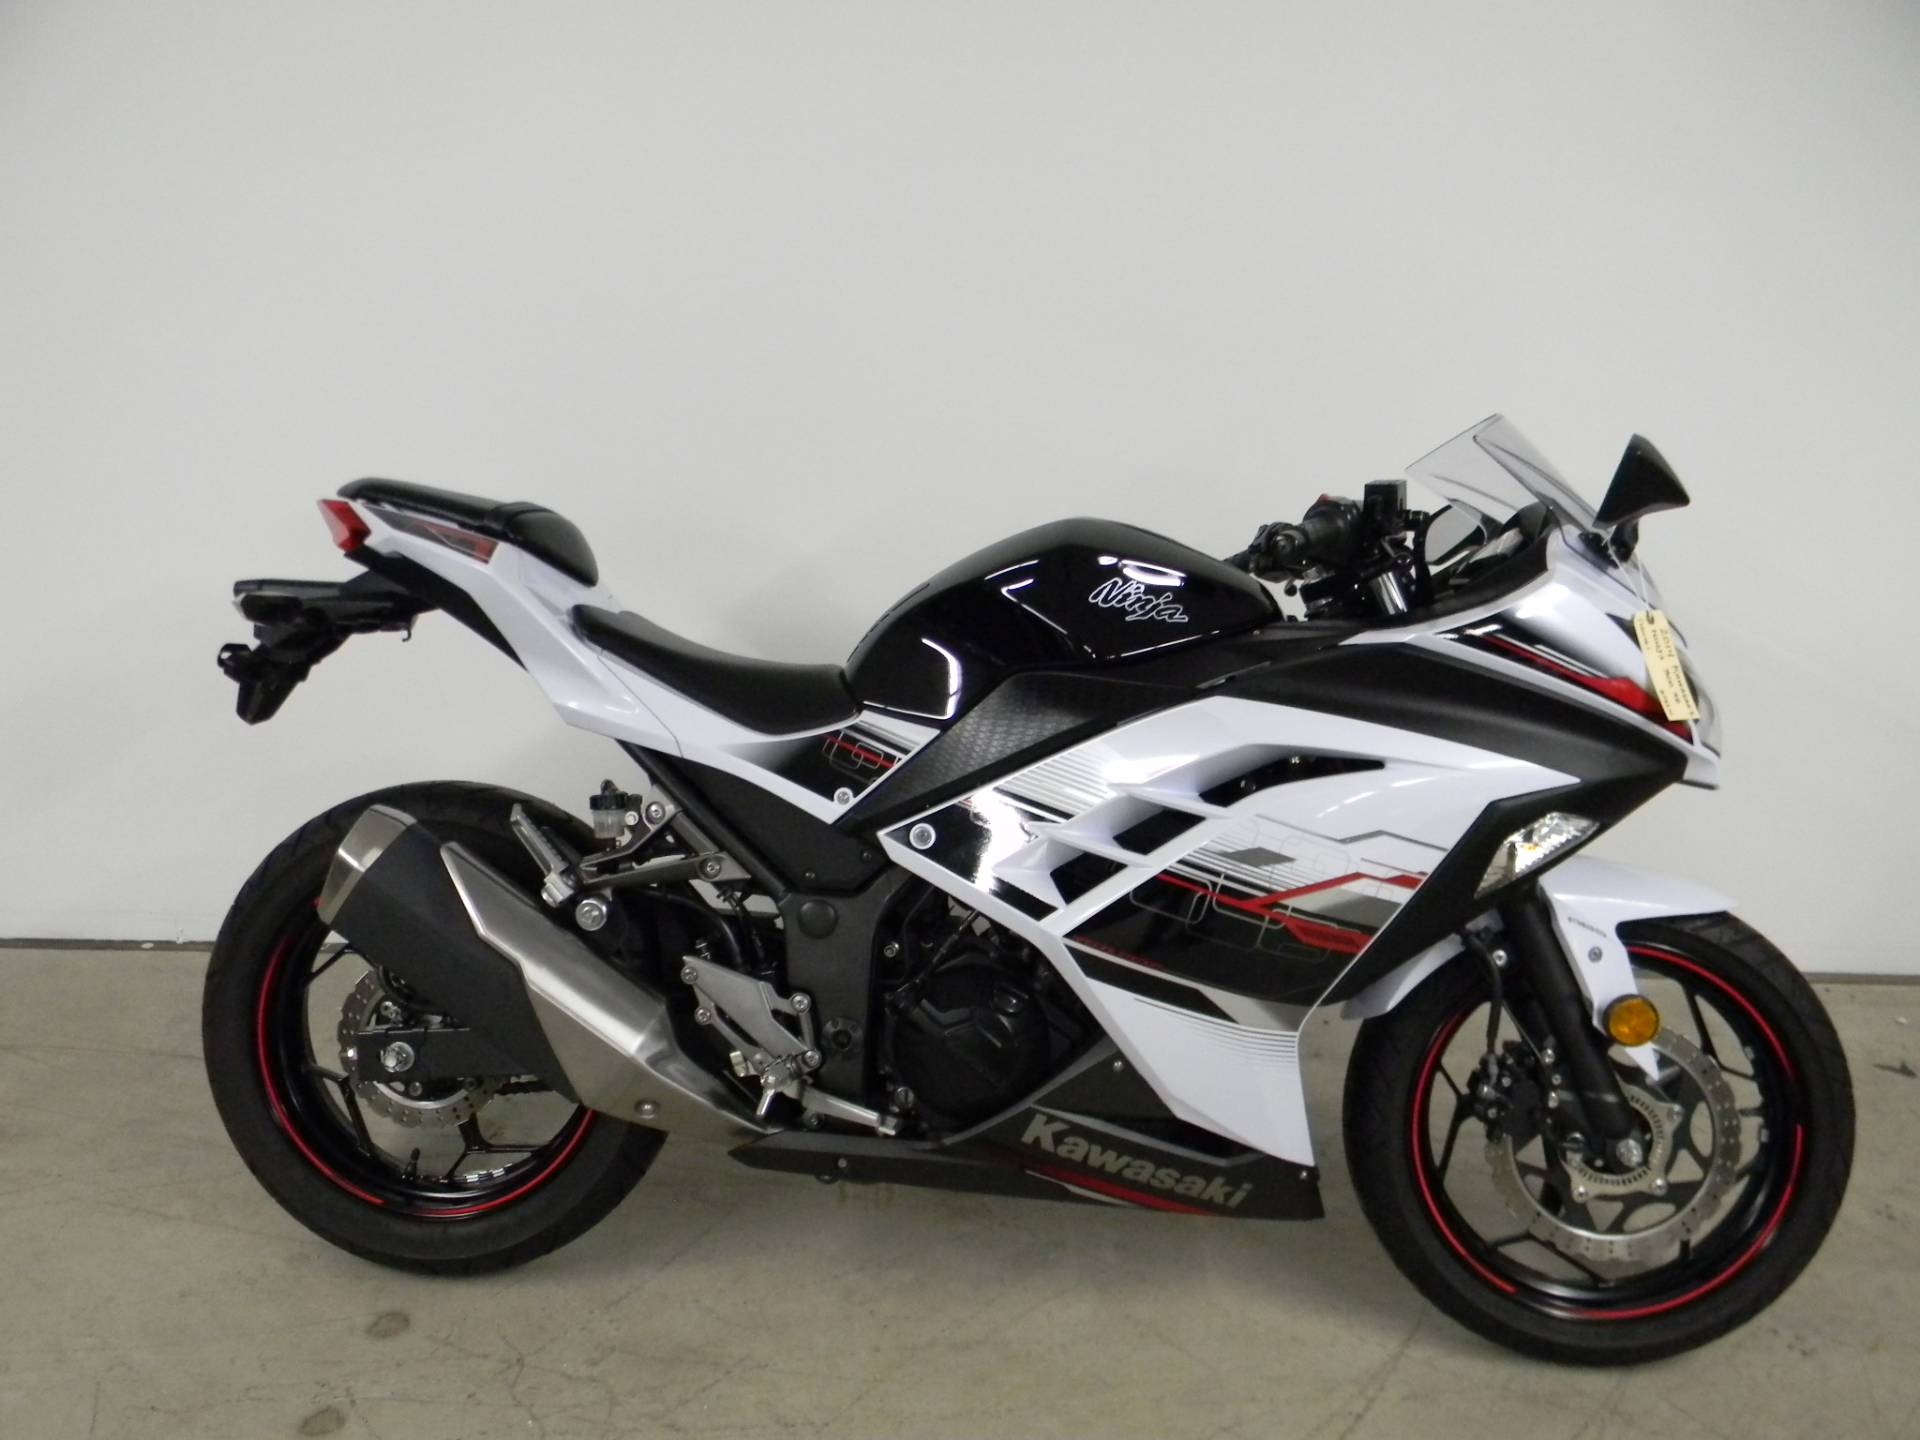 2014 Kawasaki Ninja® 300 SE in Springfield, Massachusetts - Photo 1